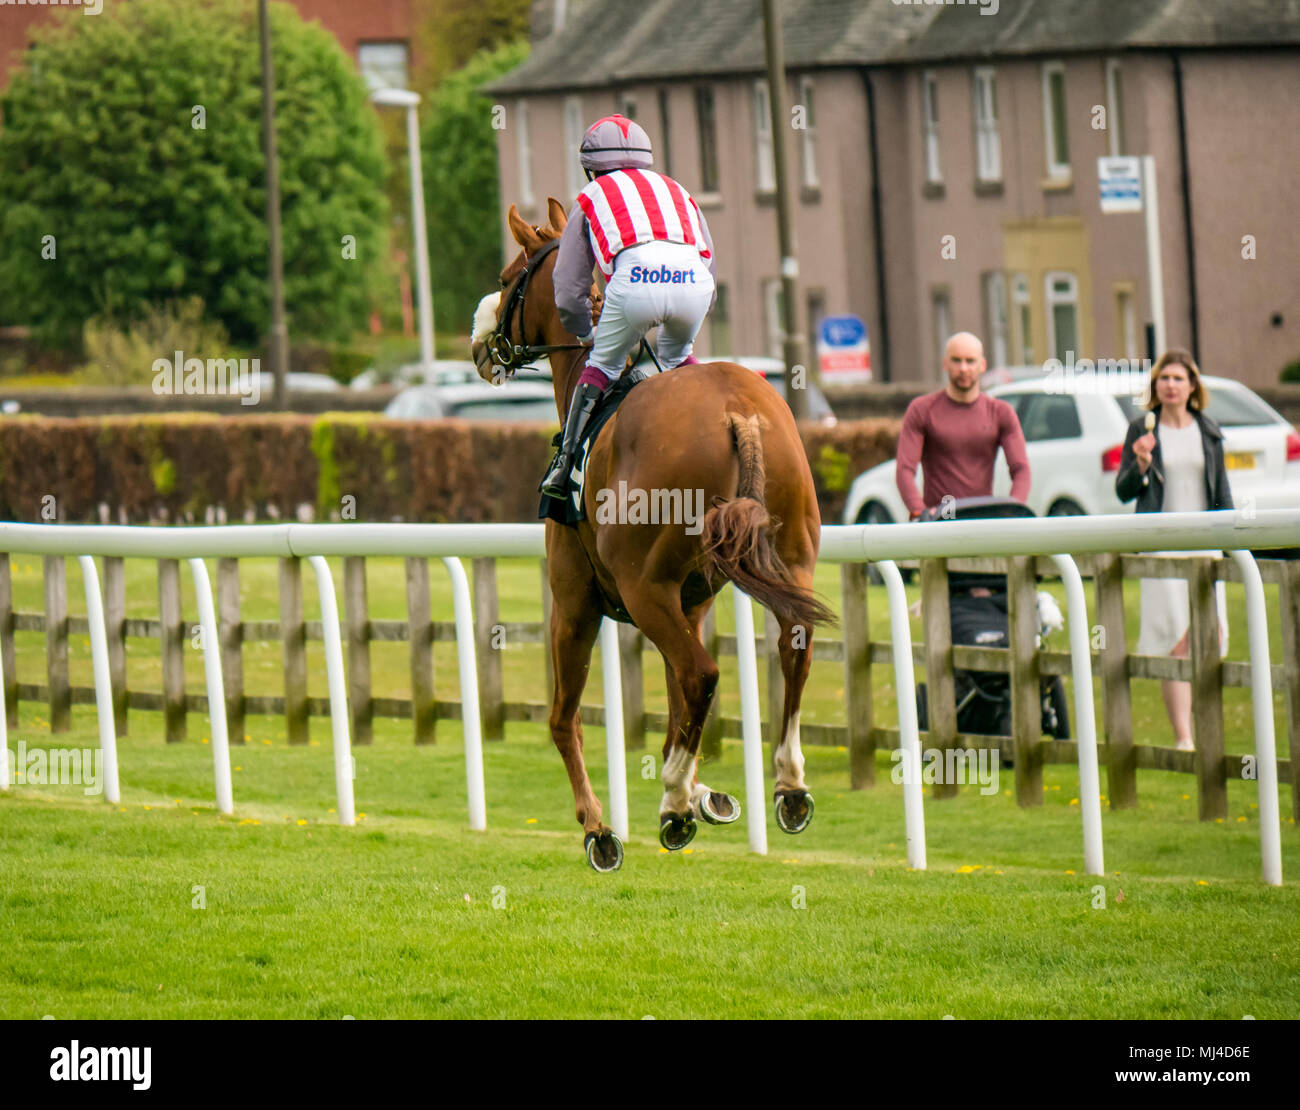 Musselburgh, Scotland, 4 May 2018. Musselburgh Race Course, Musselburgh, East Lothian, Scotland, United Kingdom. A race horse gallops to the start at the afternoon flat horse racing meet. Horse 'Suwaan' ridden by jockey James Sullivan from Ireland in the 2.40 Boogie in the Morning Handicap - Stock Image